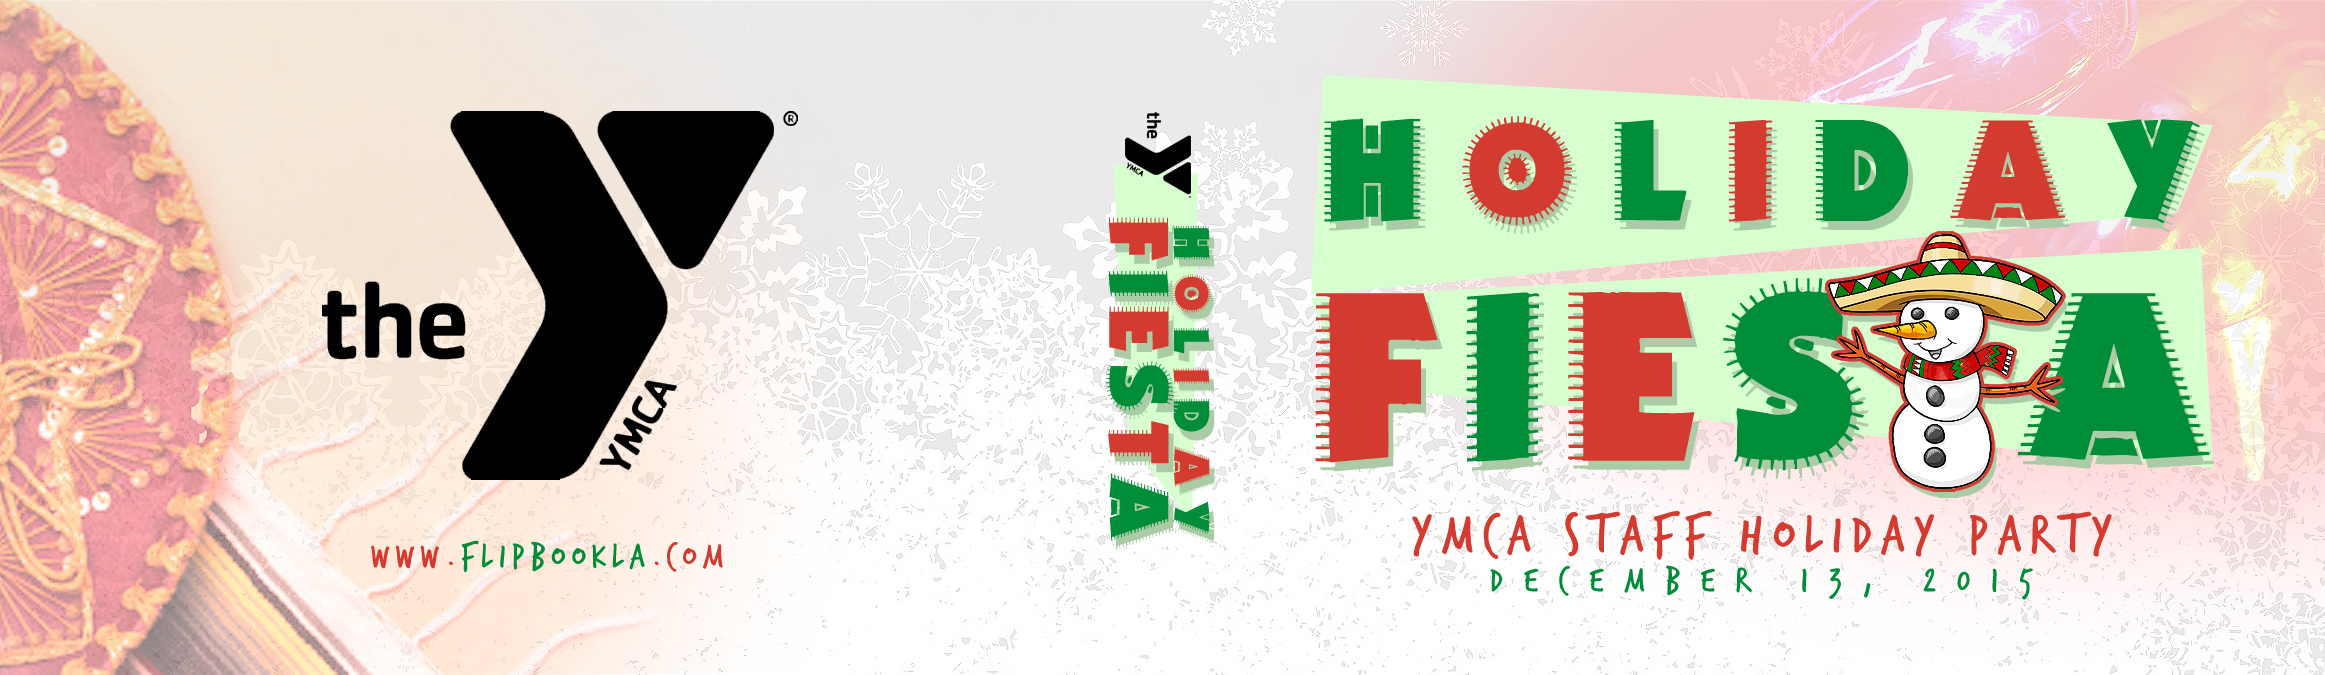 FlipBookLA-ymcaholiday